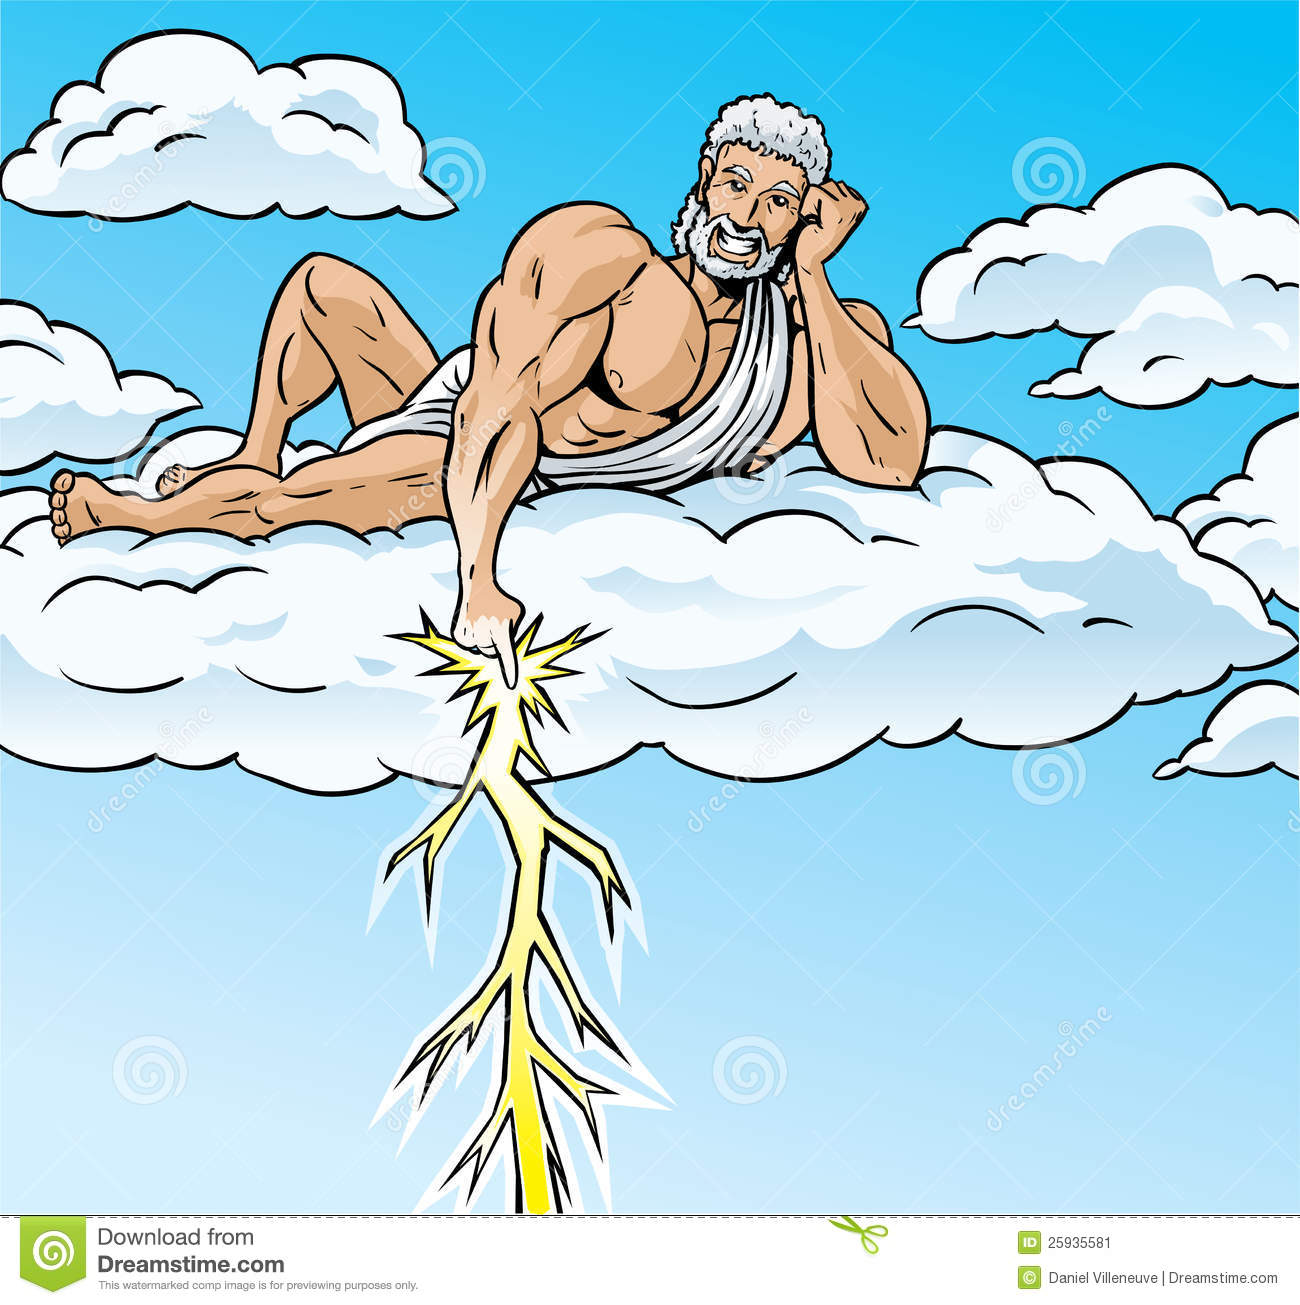 Zeus Stock Illustrations – 351 Zeus Stock Illustrations, Vectors ...